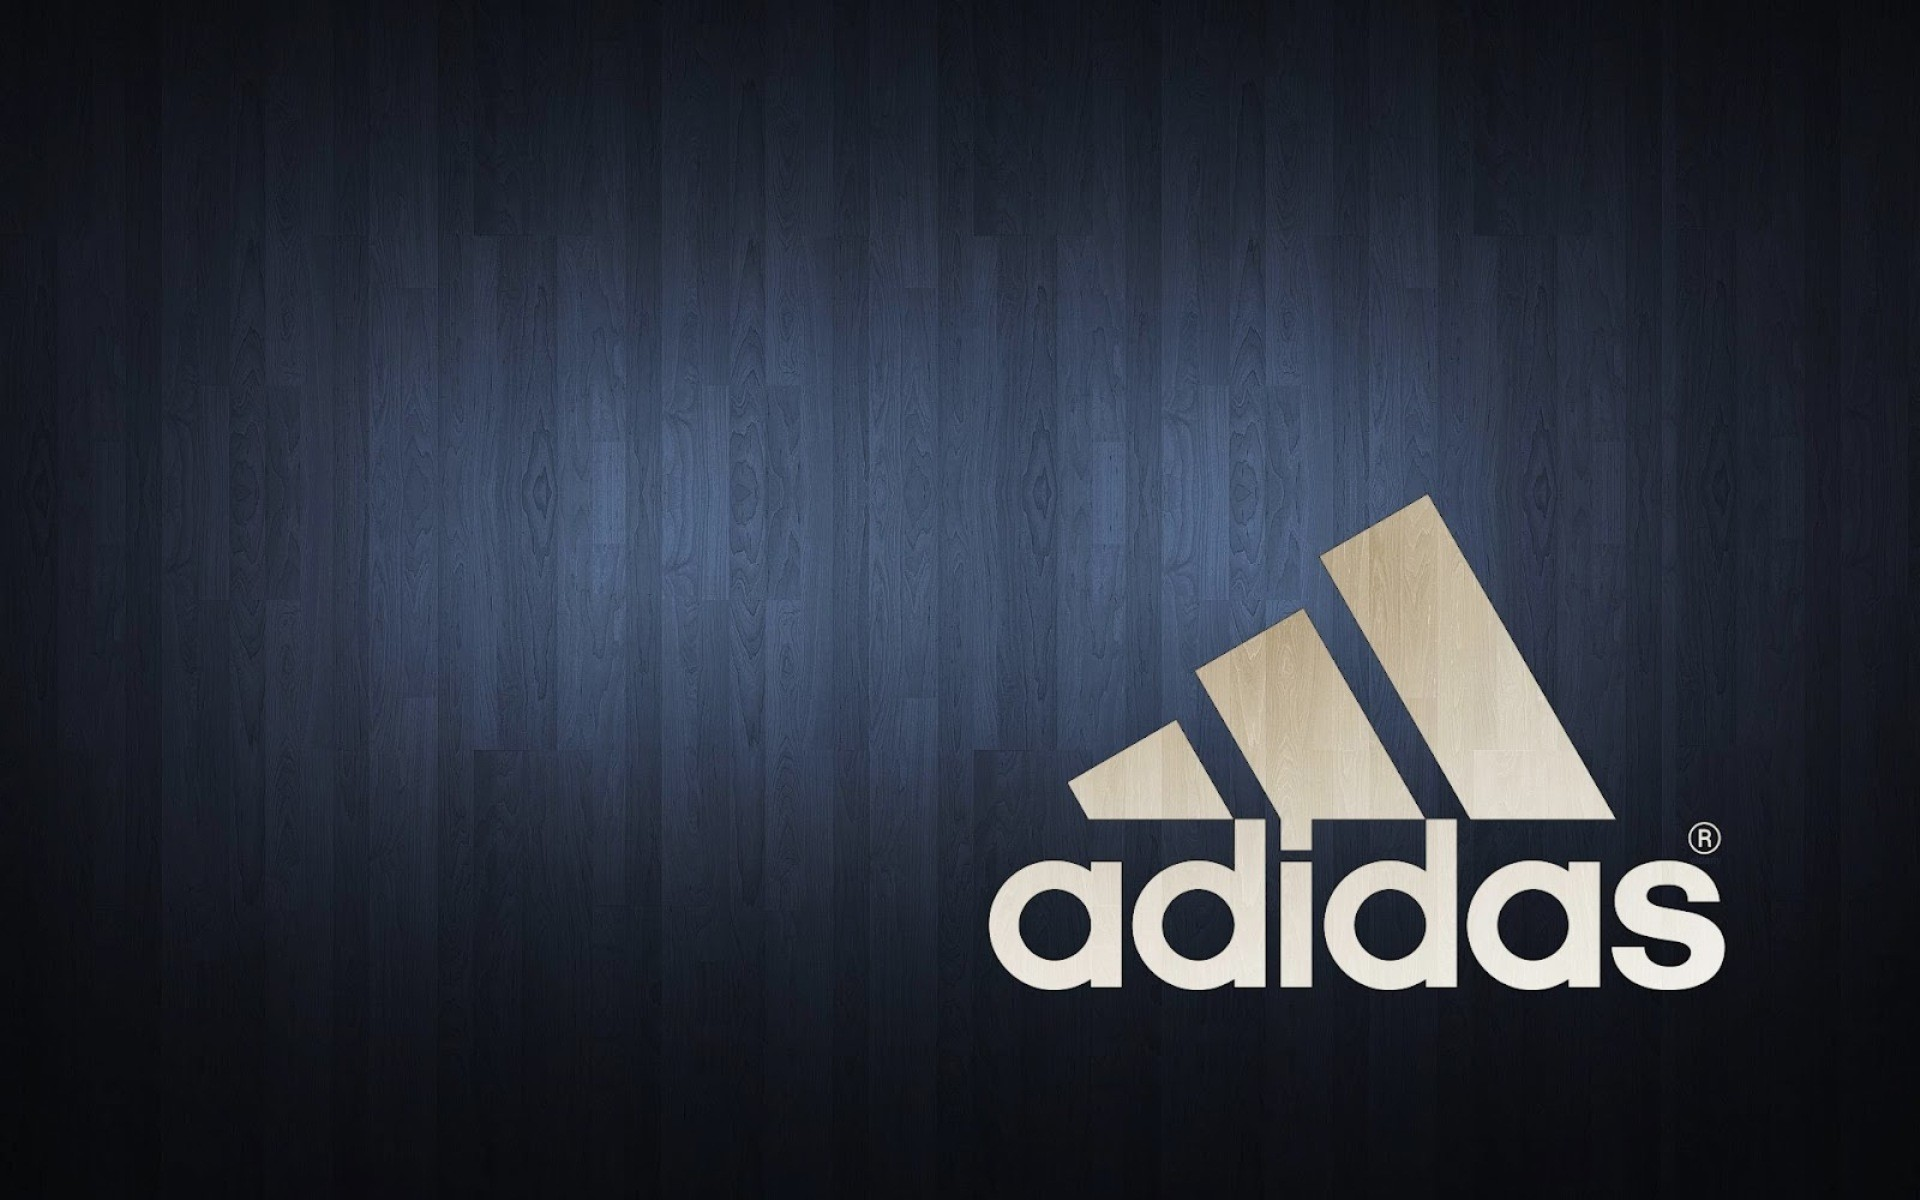 1920x1200 adidas wallpapers hd download hd wallpapers download free windows wallpapers colourful 4k picture artwork lovely